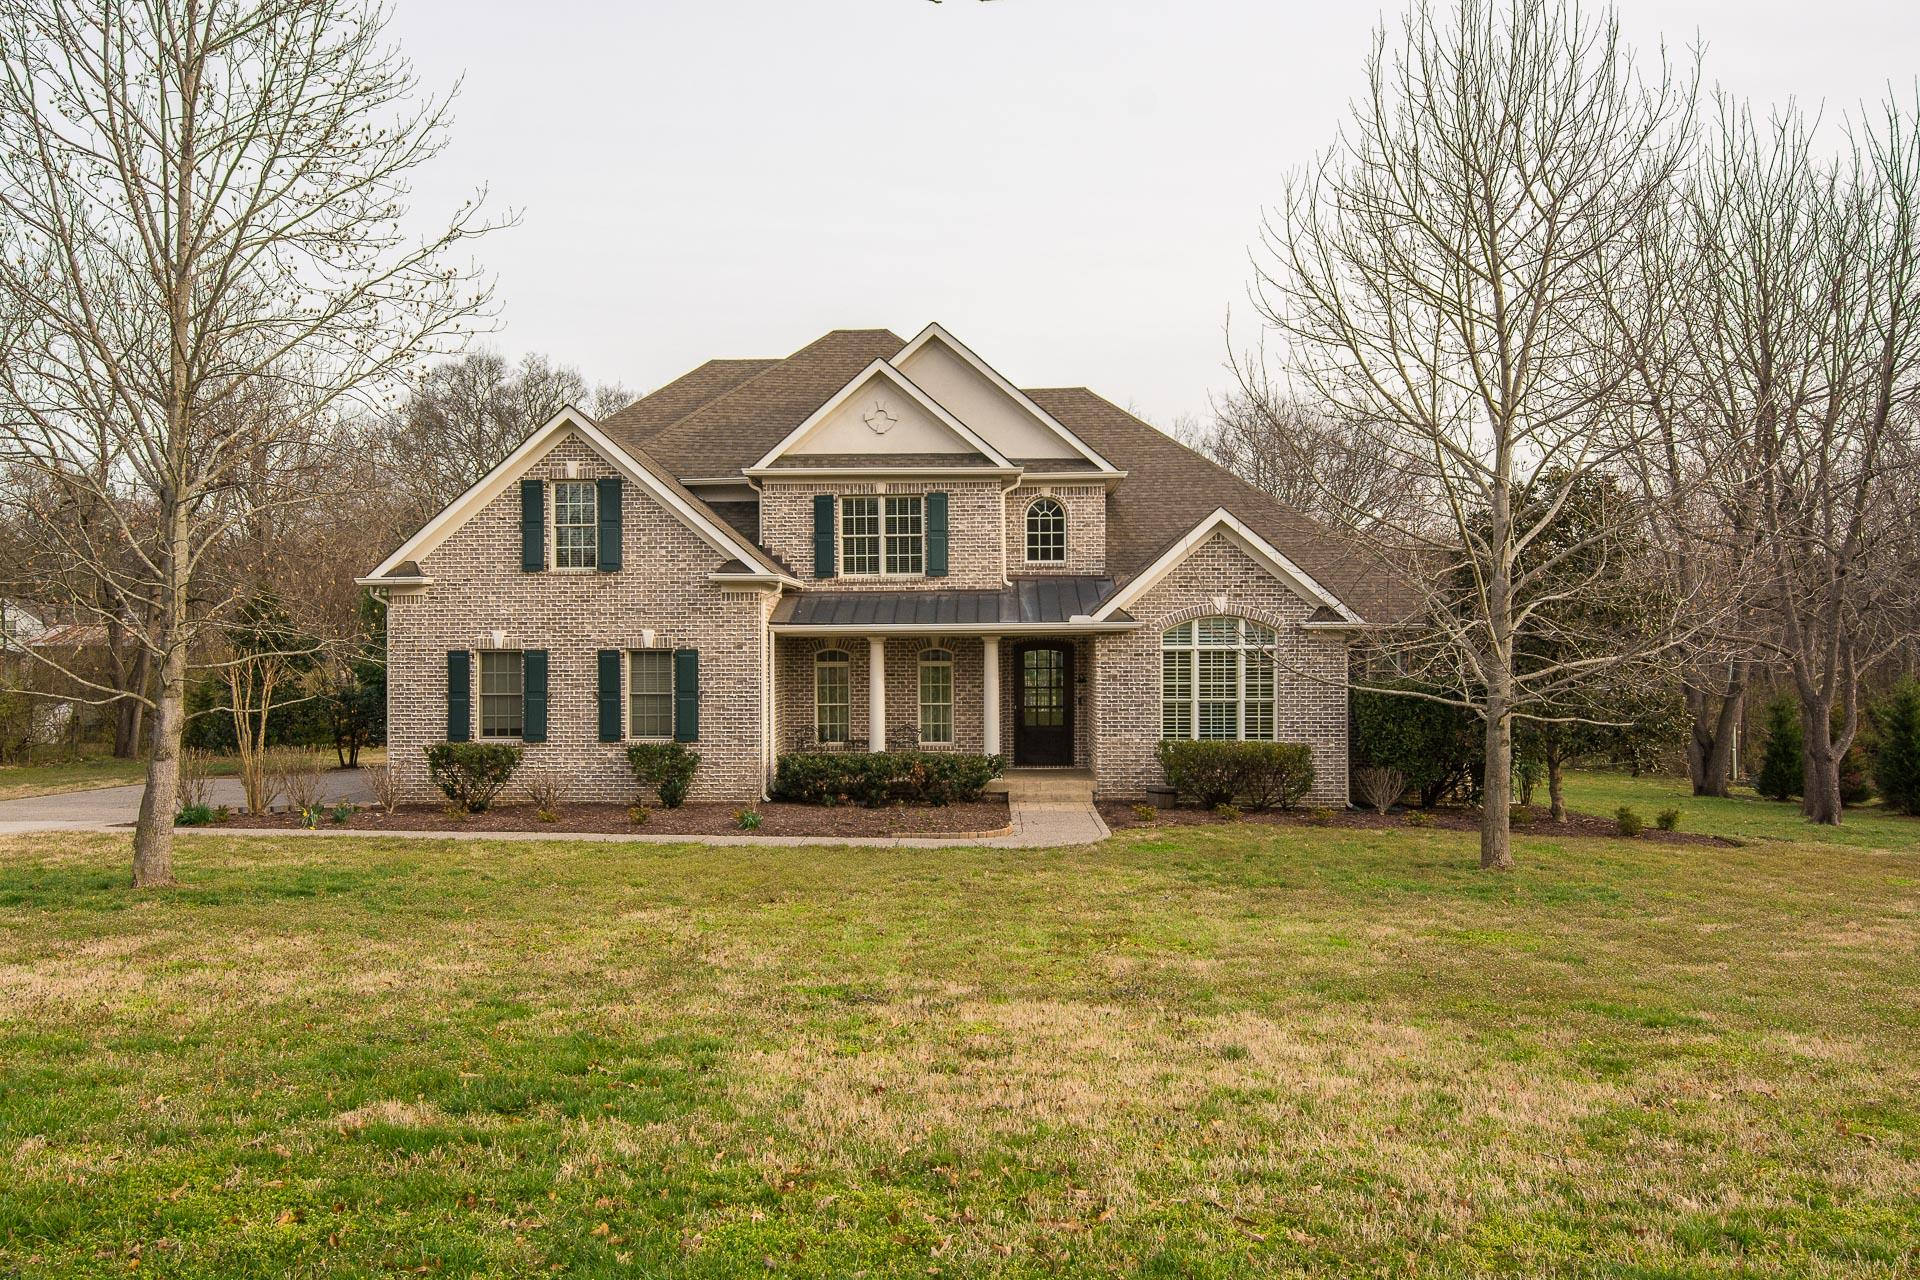 922 Waterswood Dr, Nashville-Southeast in Davidson County County, TN 37220 Home for Sale